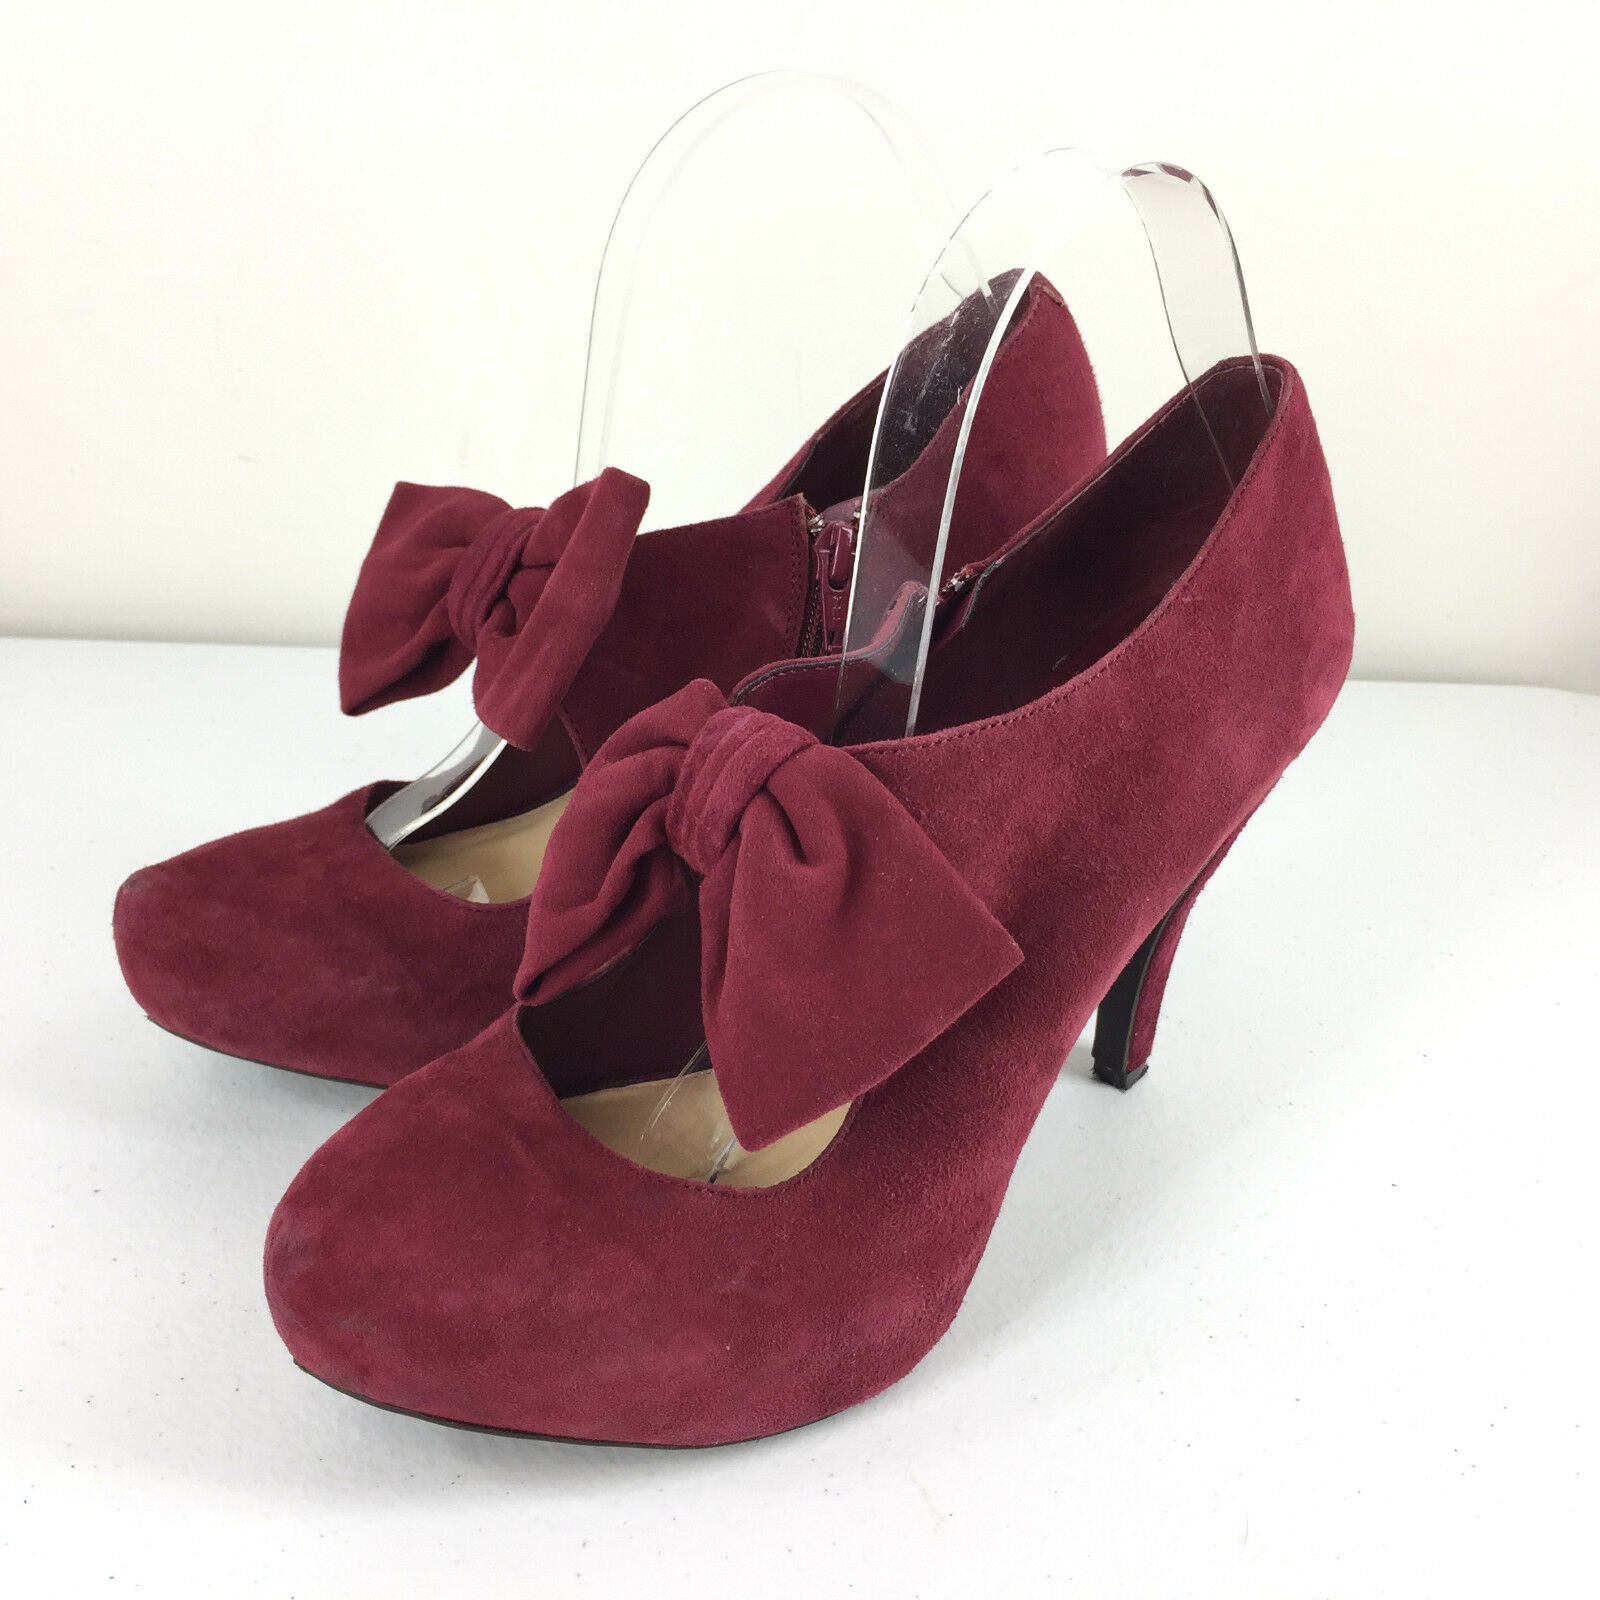 Gianni Bini 9 M Red Suede Leather Platform Mary jane High Heels EUC bow